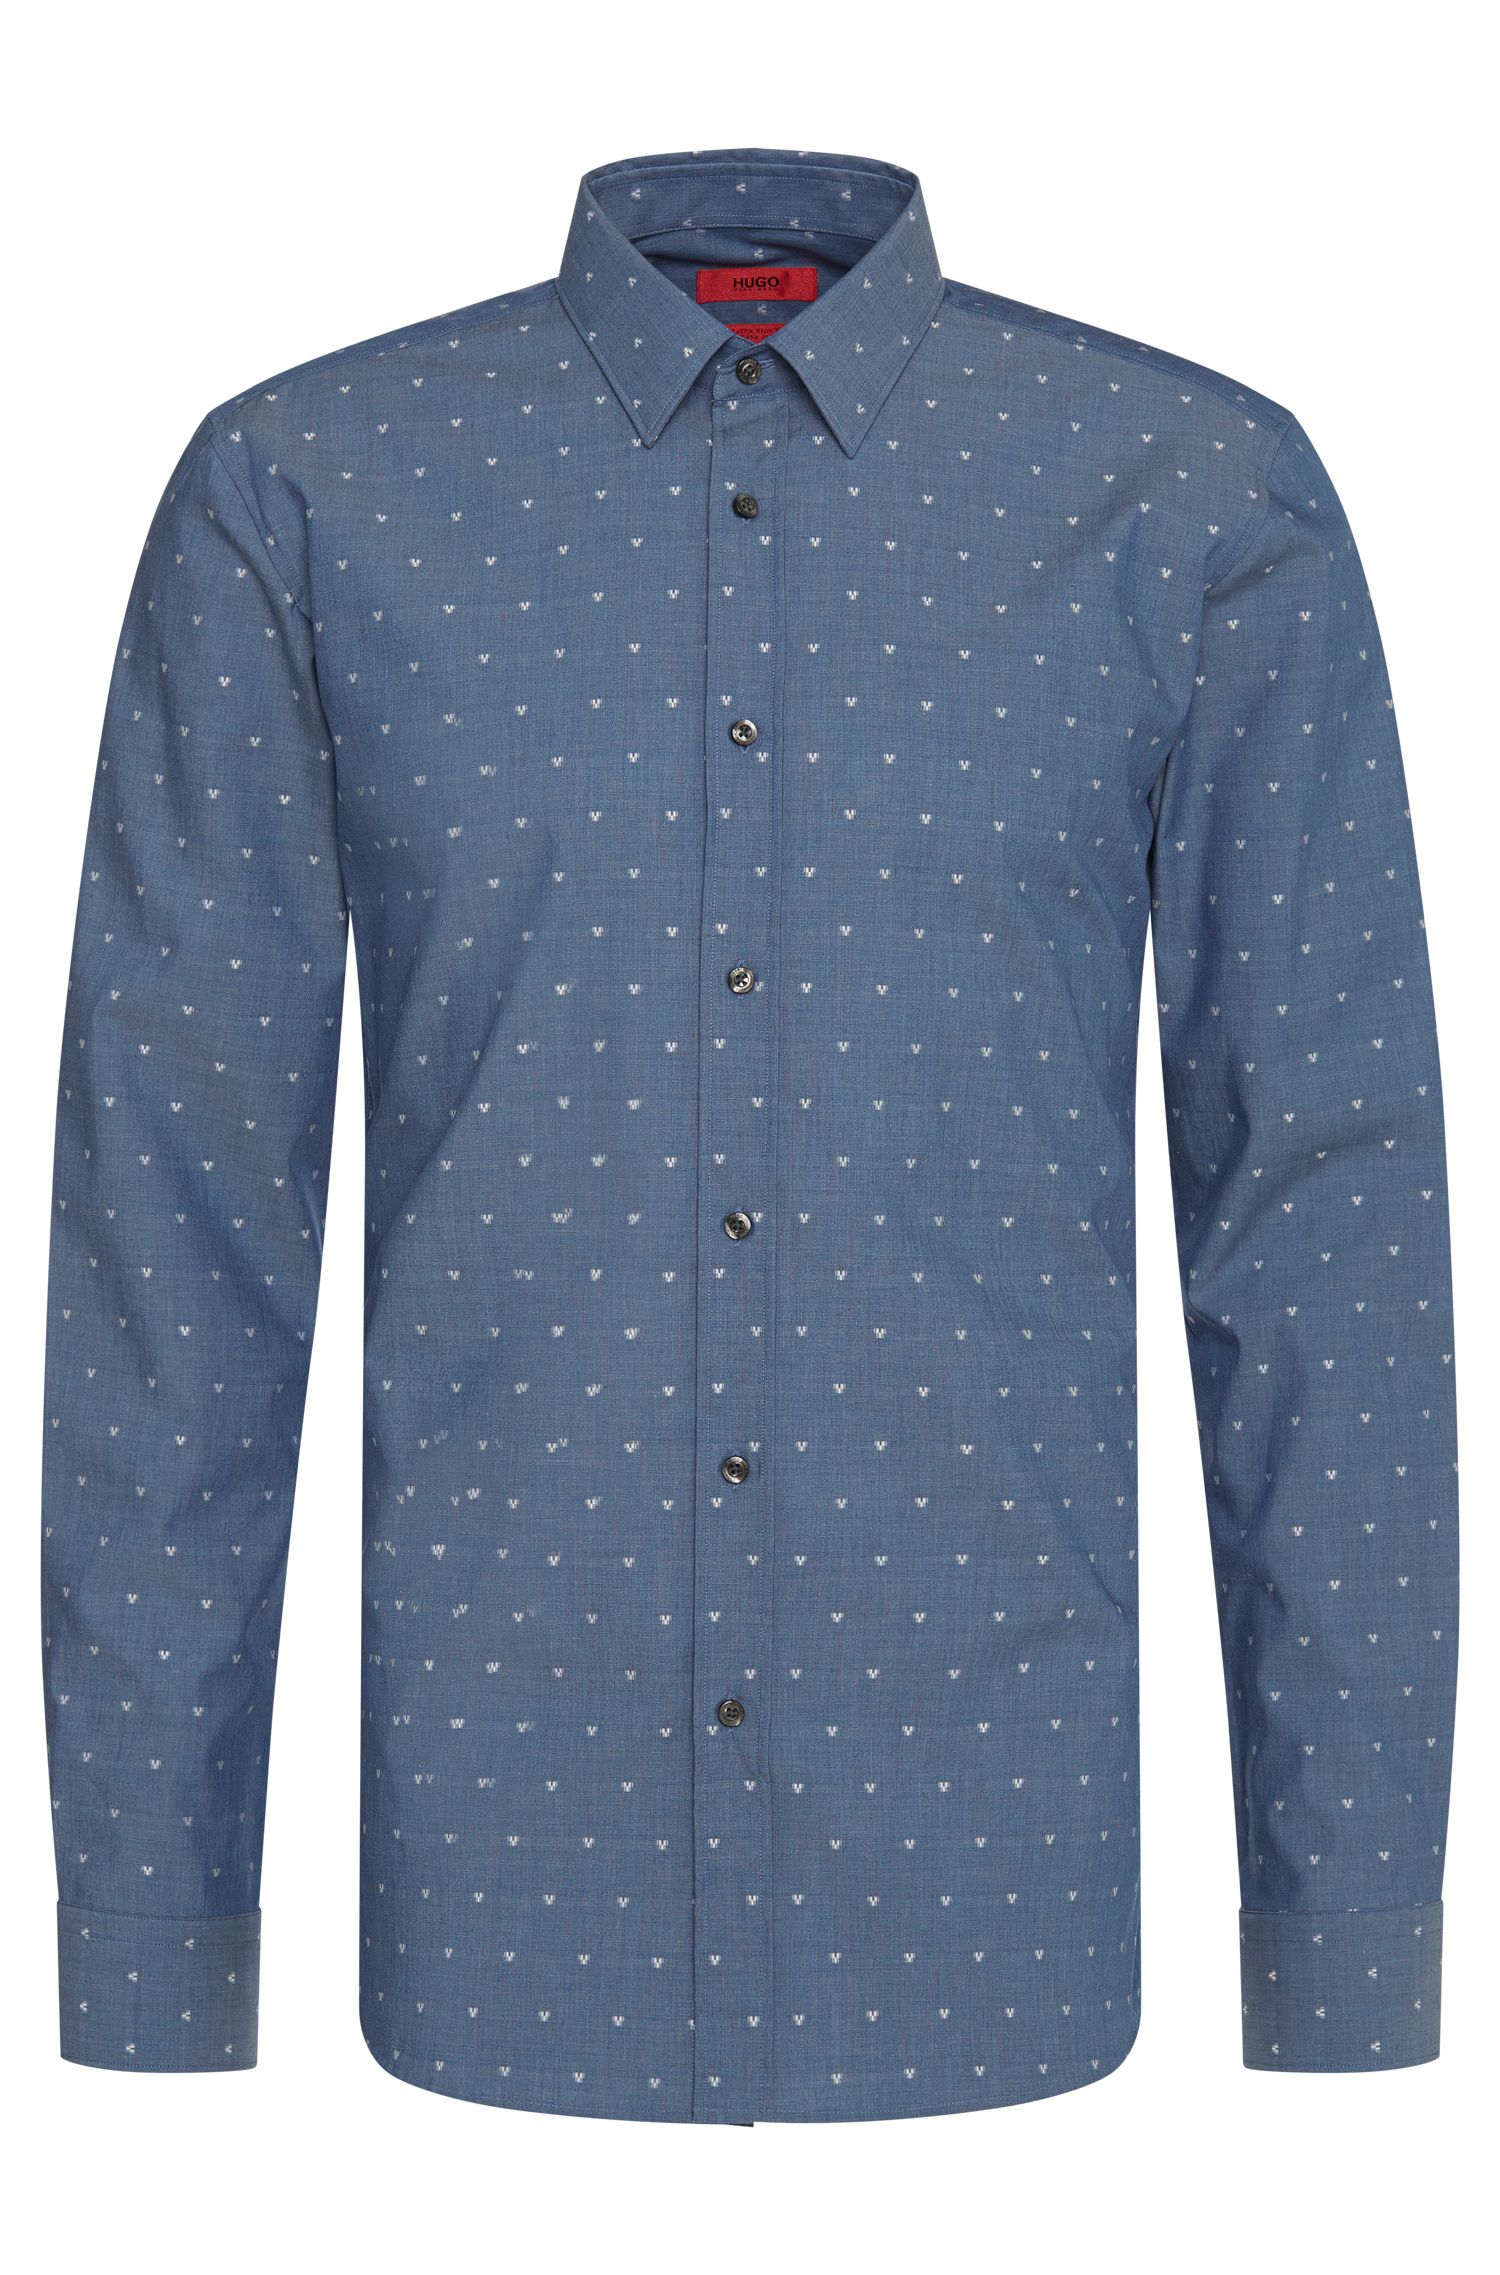 'Elisha' | Extra-Slim Fit, Fil Coupe Cotton Button Down Shirt